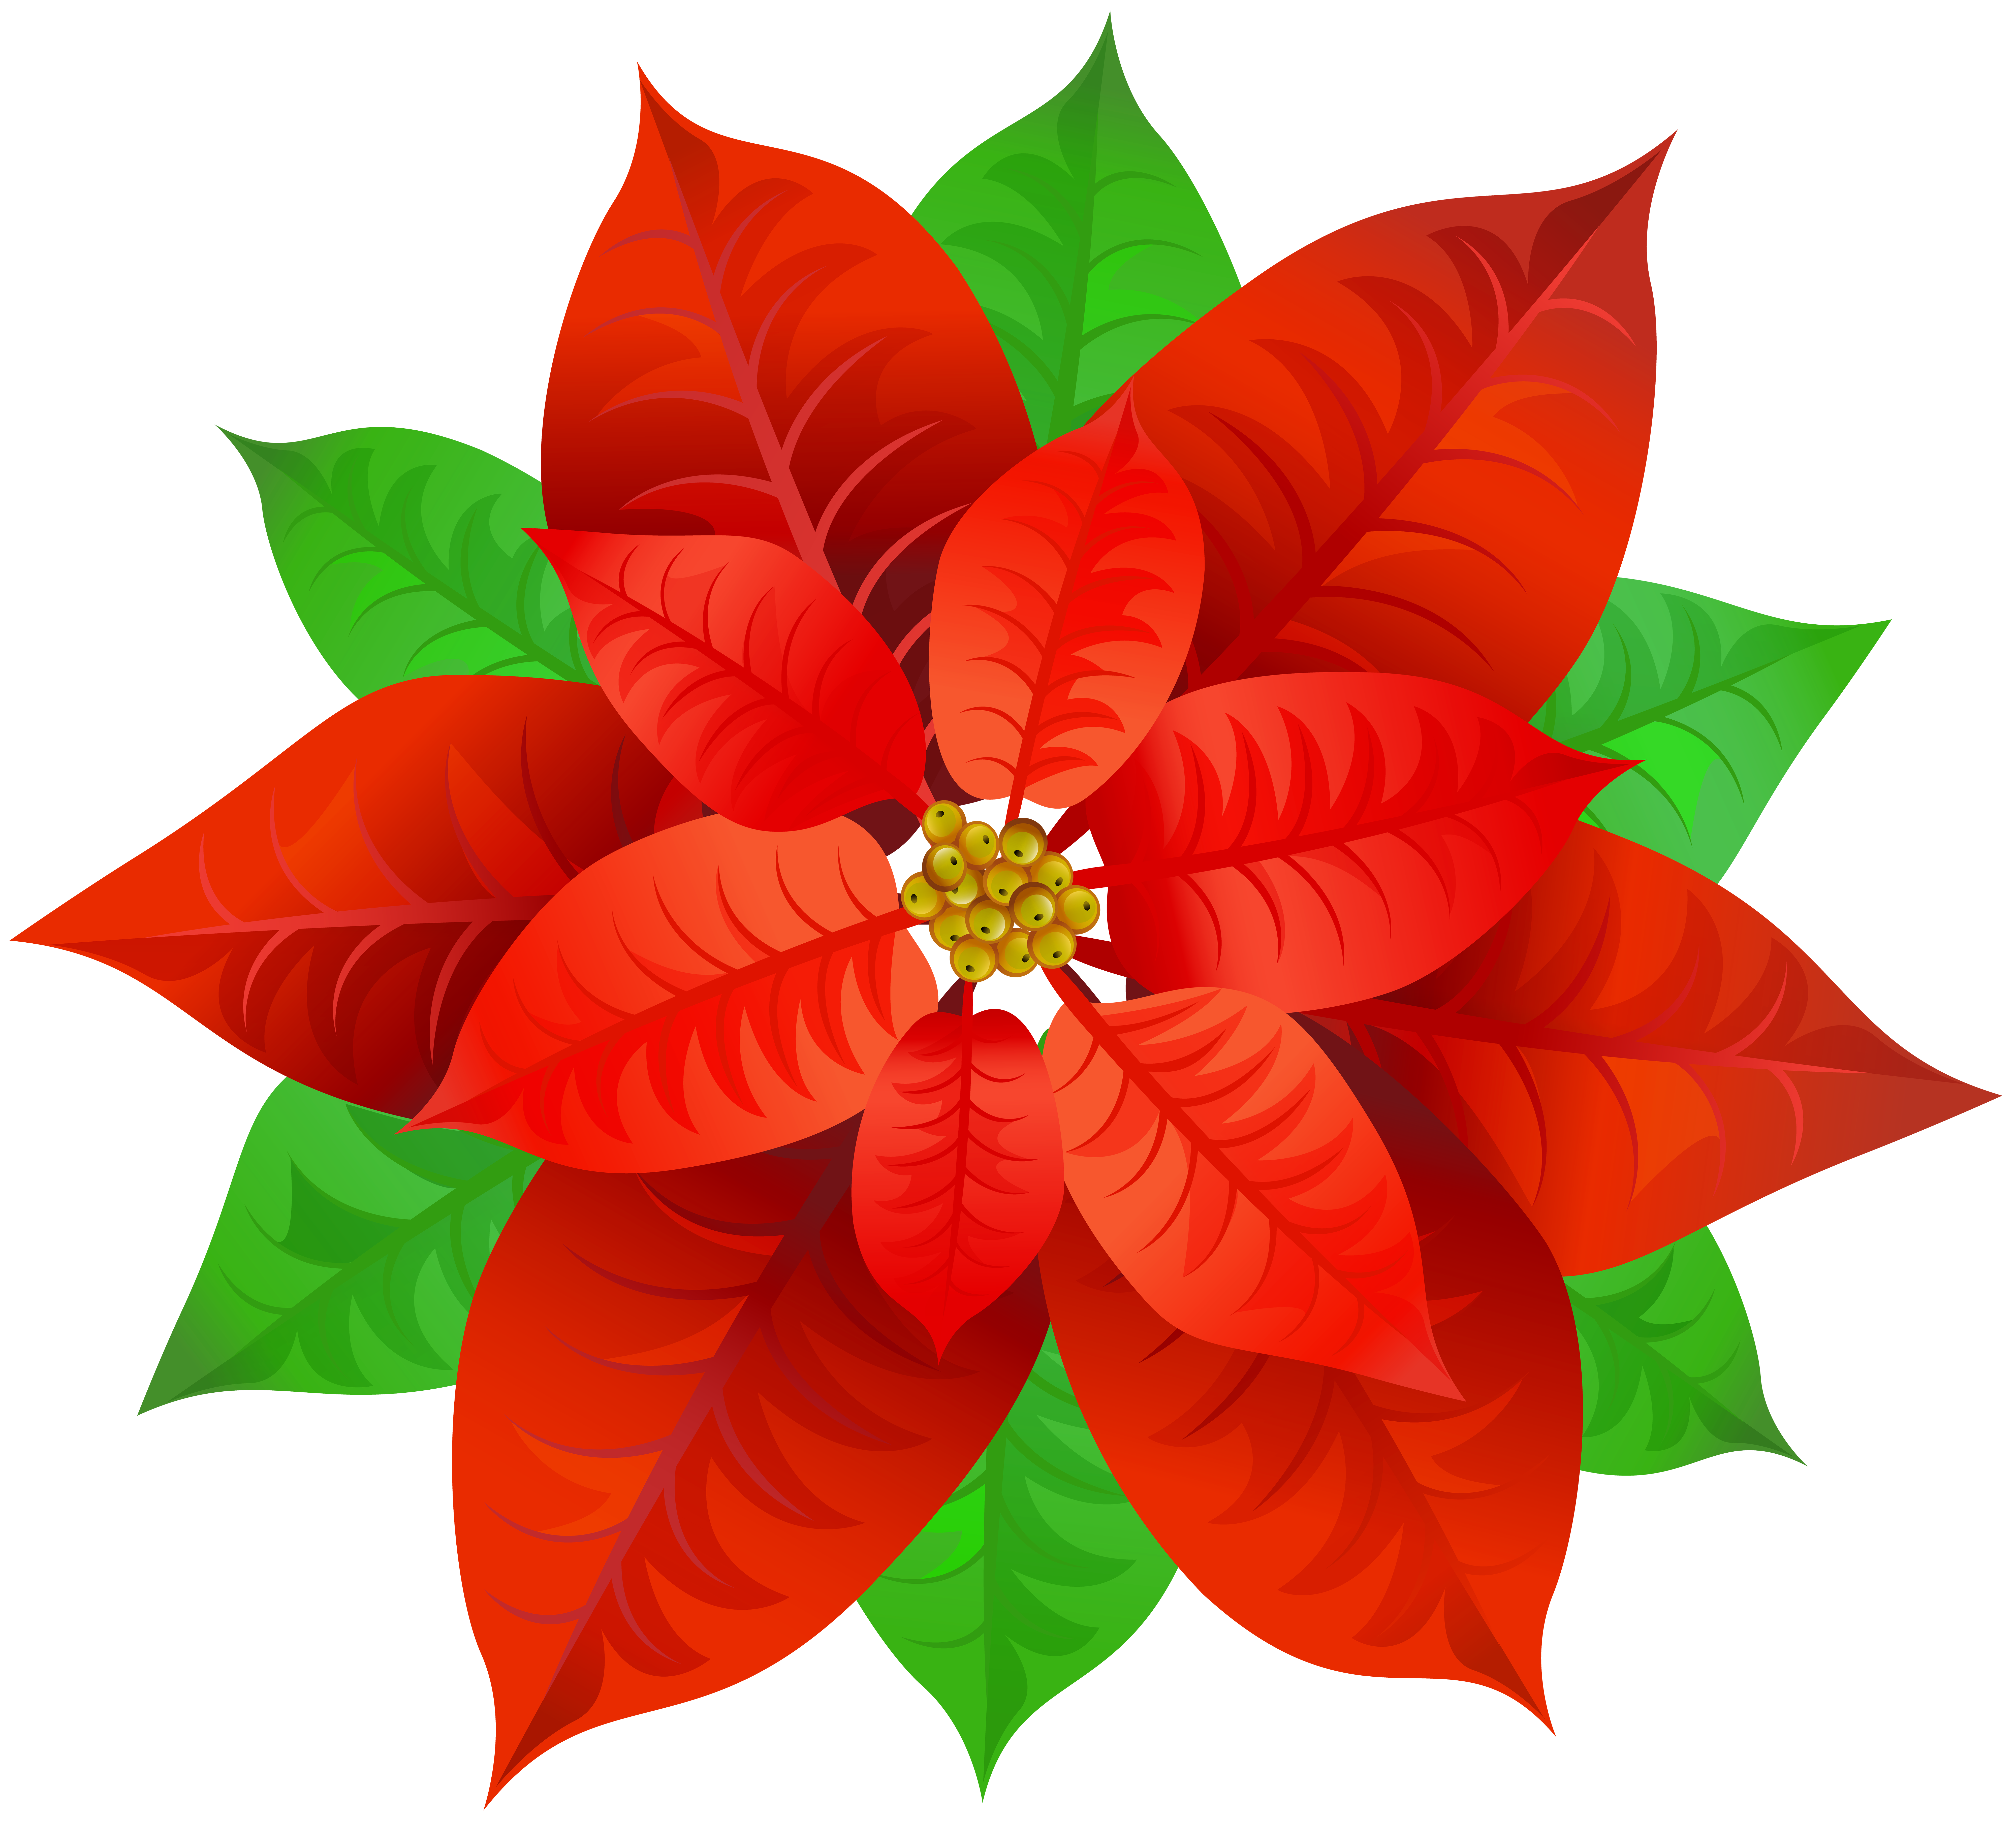 Poinsettia transparent. Png image gallery yopriceville